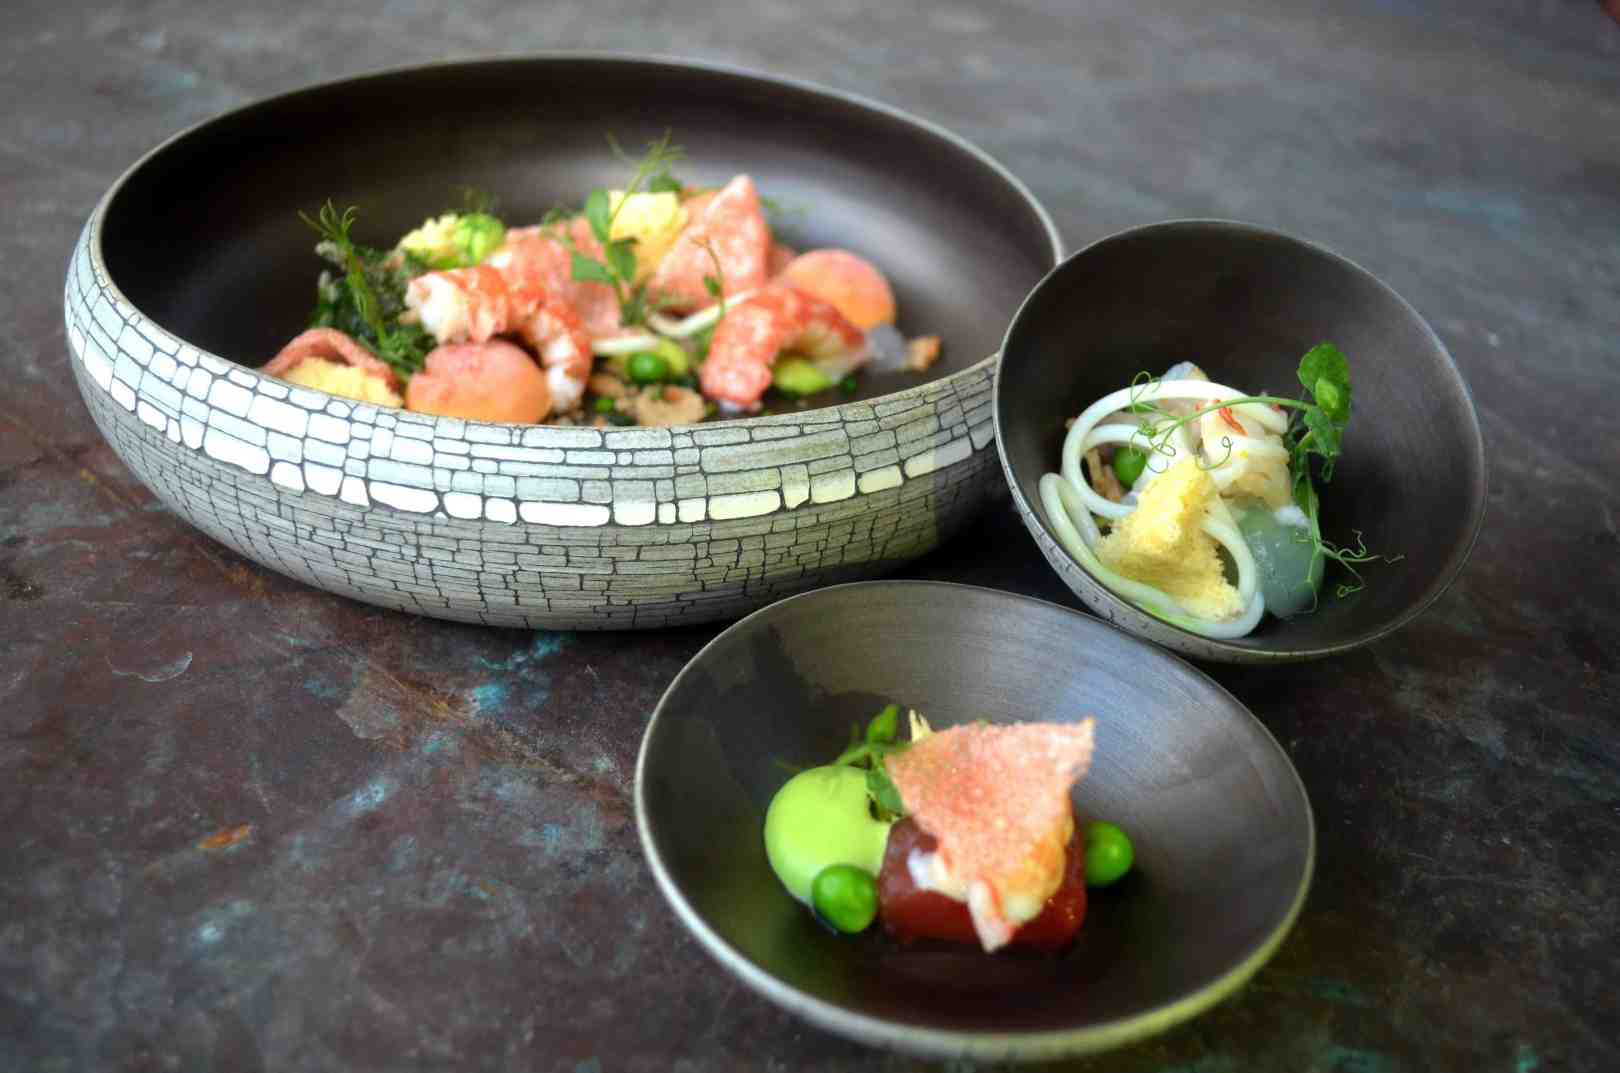 These plates serve to highlight the freshness of the food